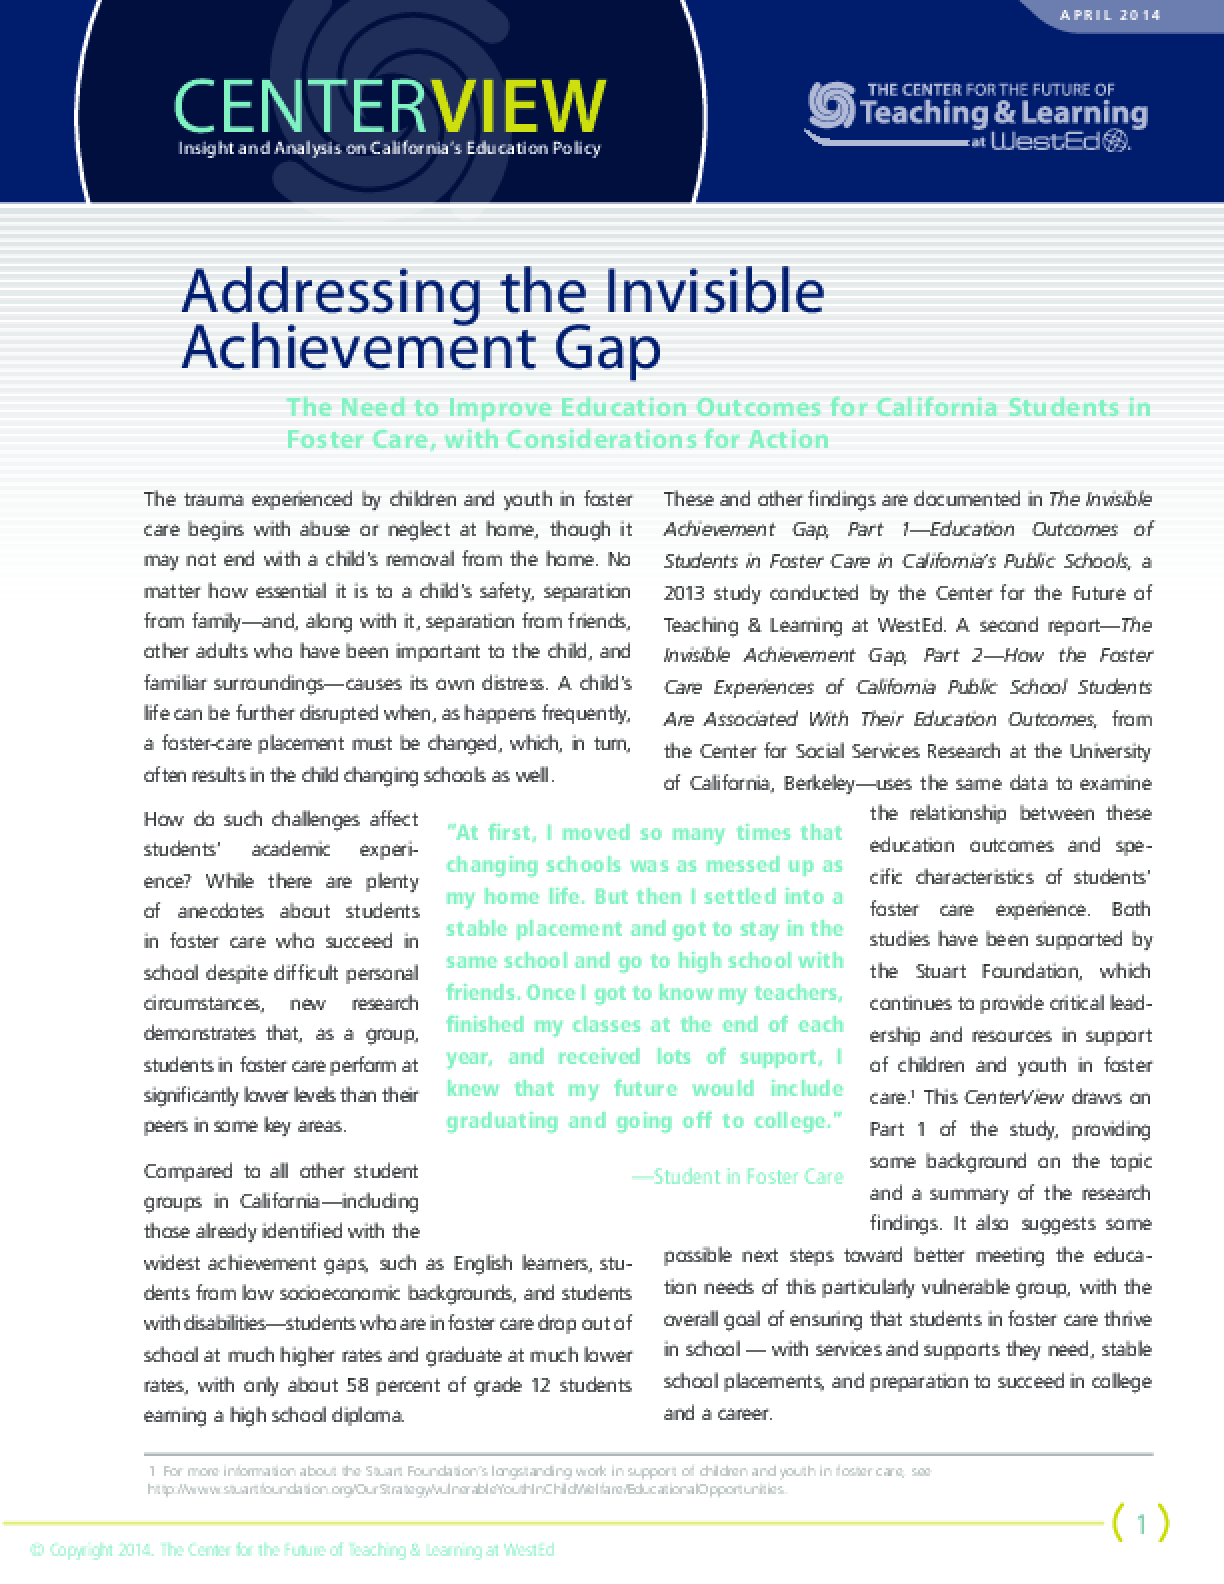 CenterView: Addressing the Invisible Achievement Gap